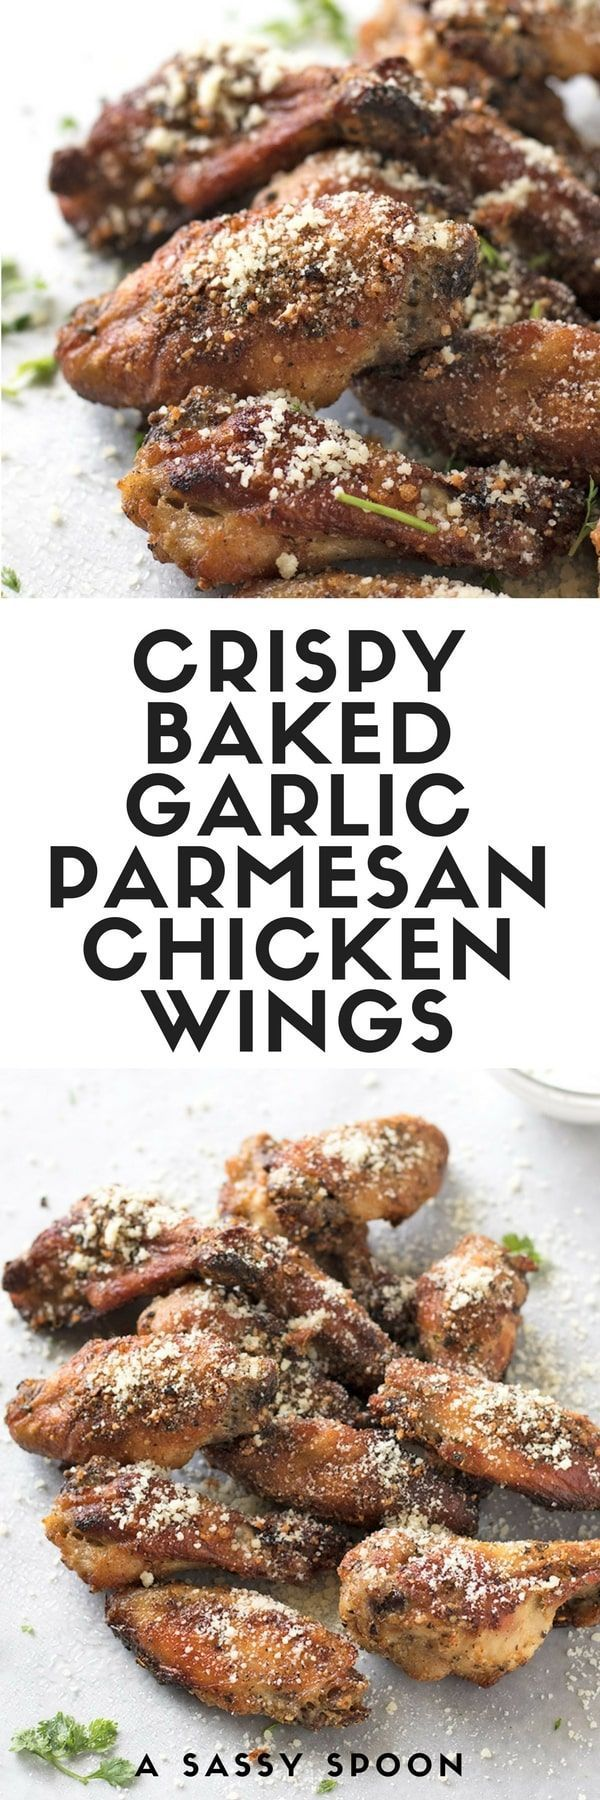 Easy-to-make, crispy oven baked garlic parmesan chicken wings that are so tasty, you will think they're fried! via @asassyspoon